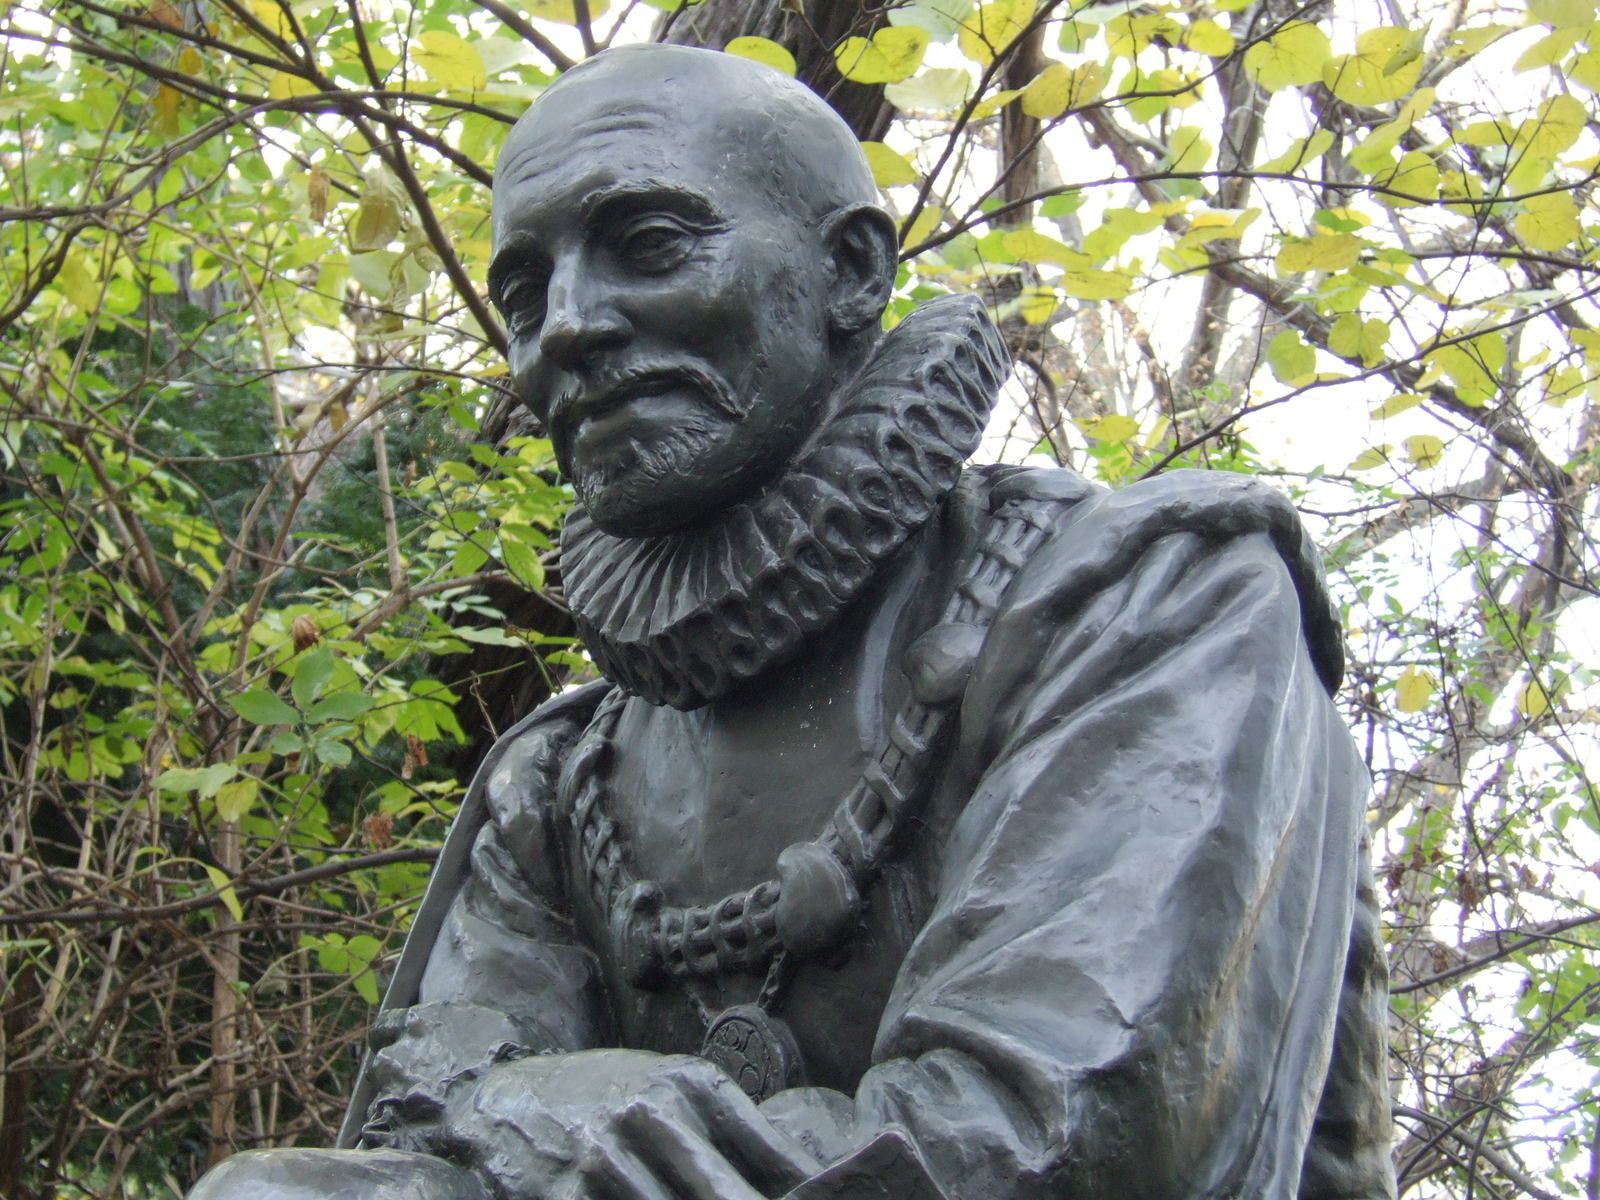 How does Montaigne view human nature?